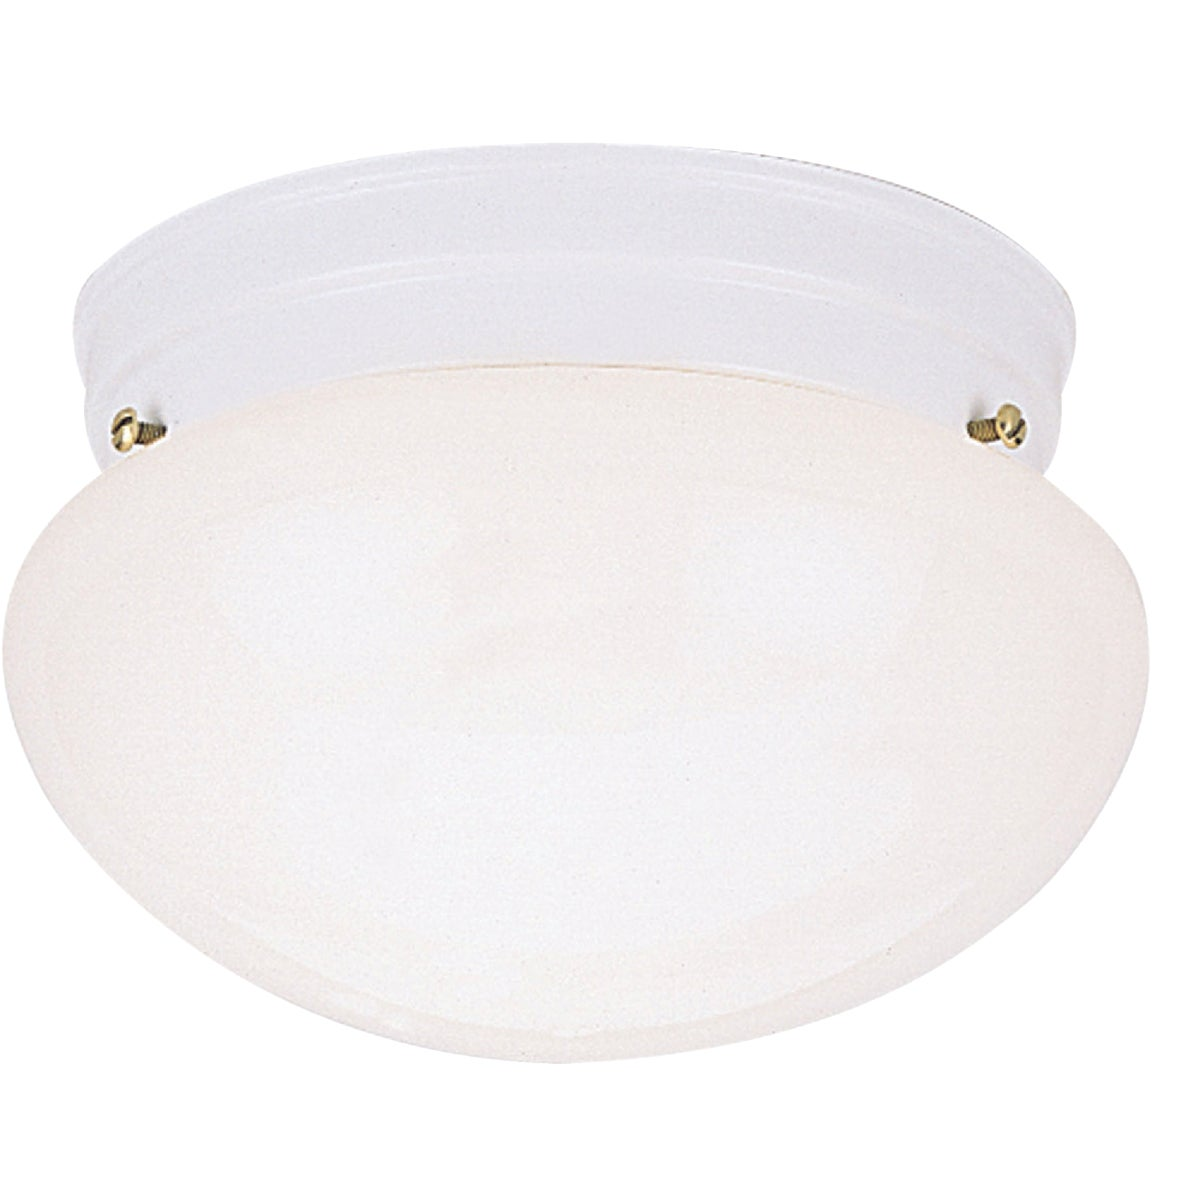 2BULB WH CEILING FIXTURE - IFM710WH by Canarm Gs